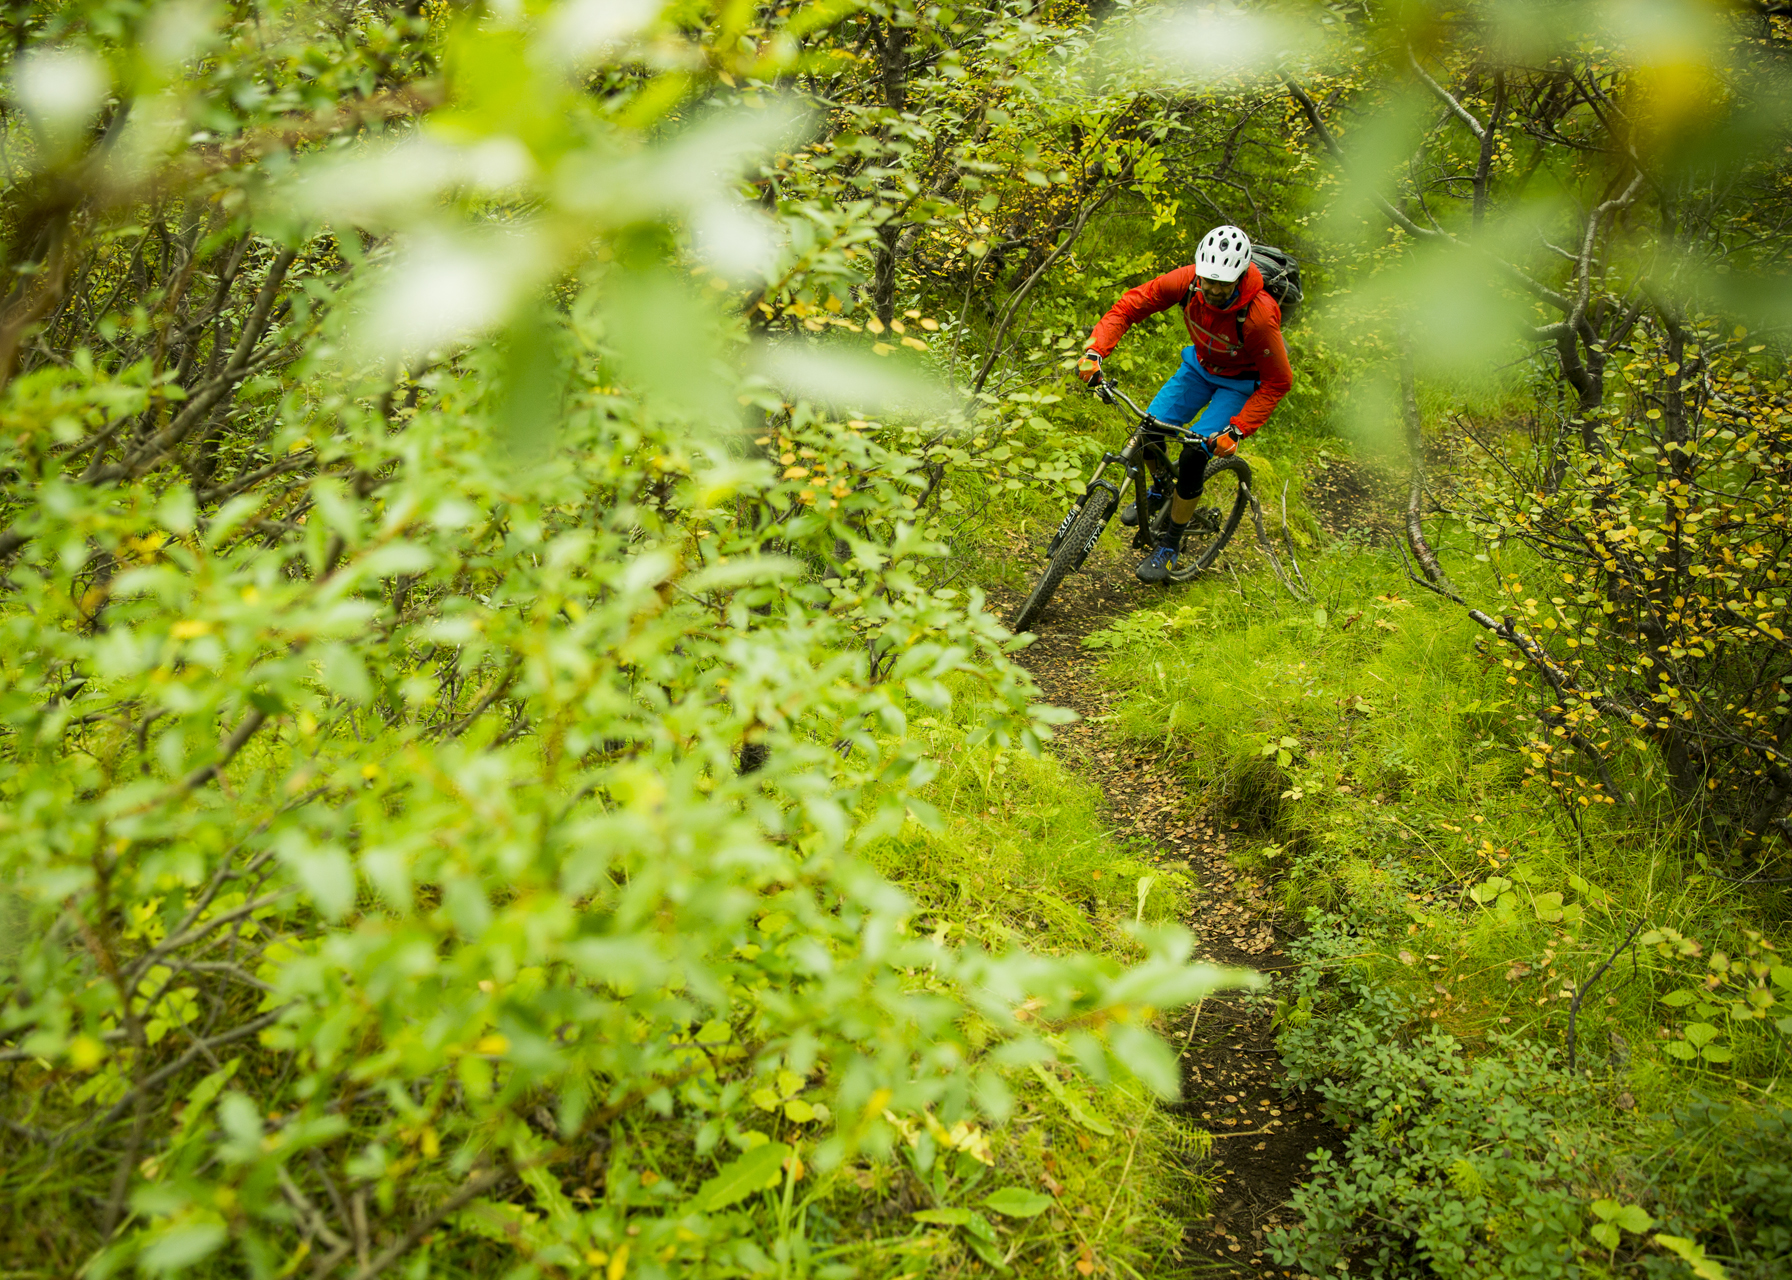 Just when we thought we had seen everything in Iceland, we pedaled through a birch forest on the approch to Þórsmörk.